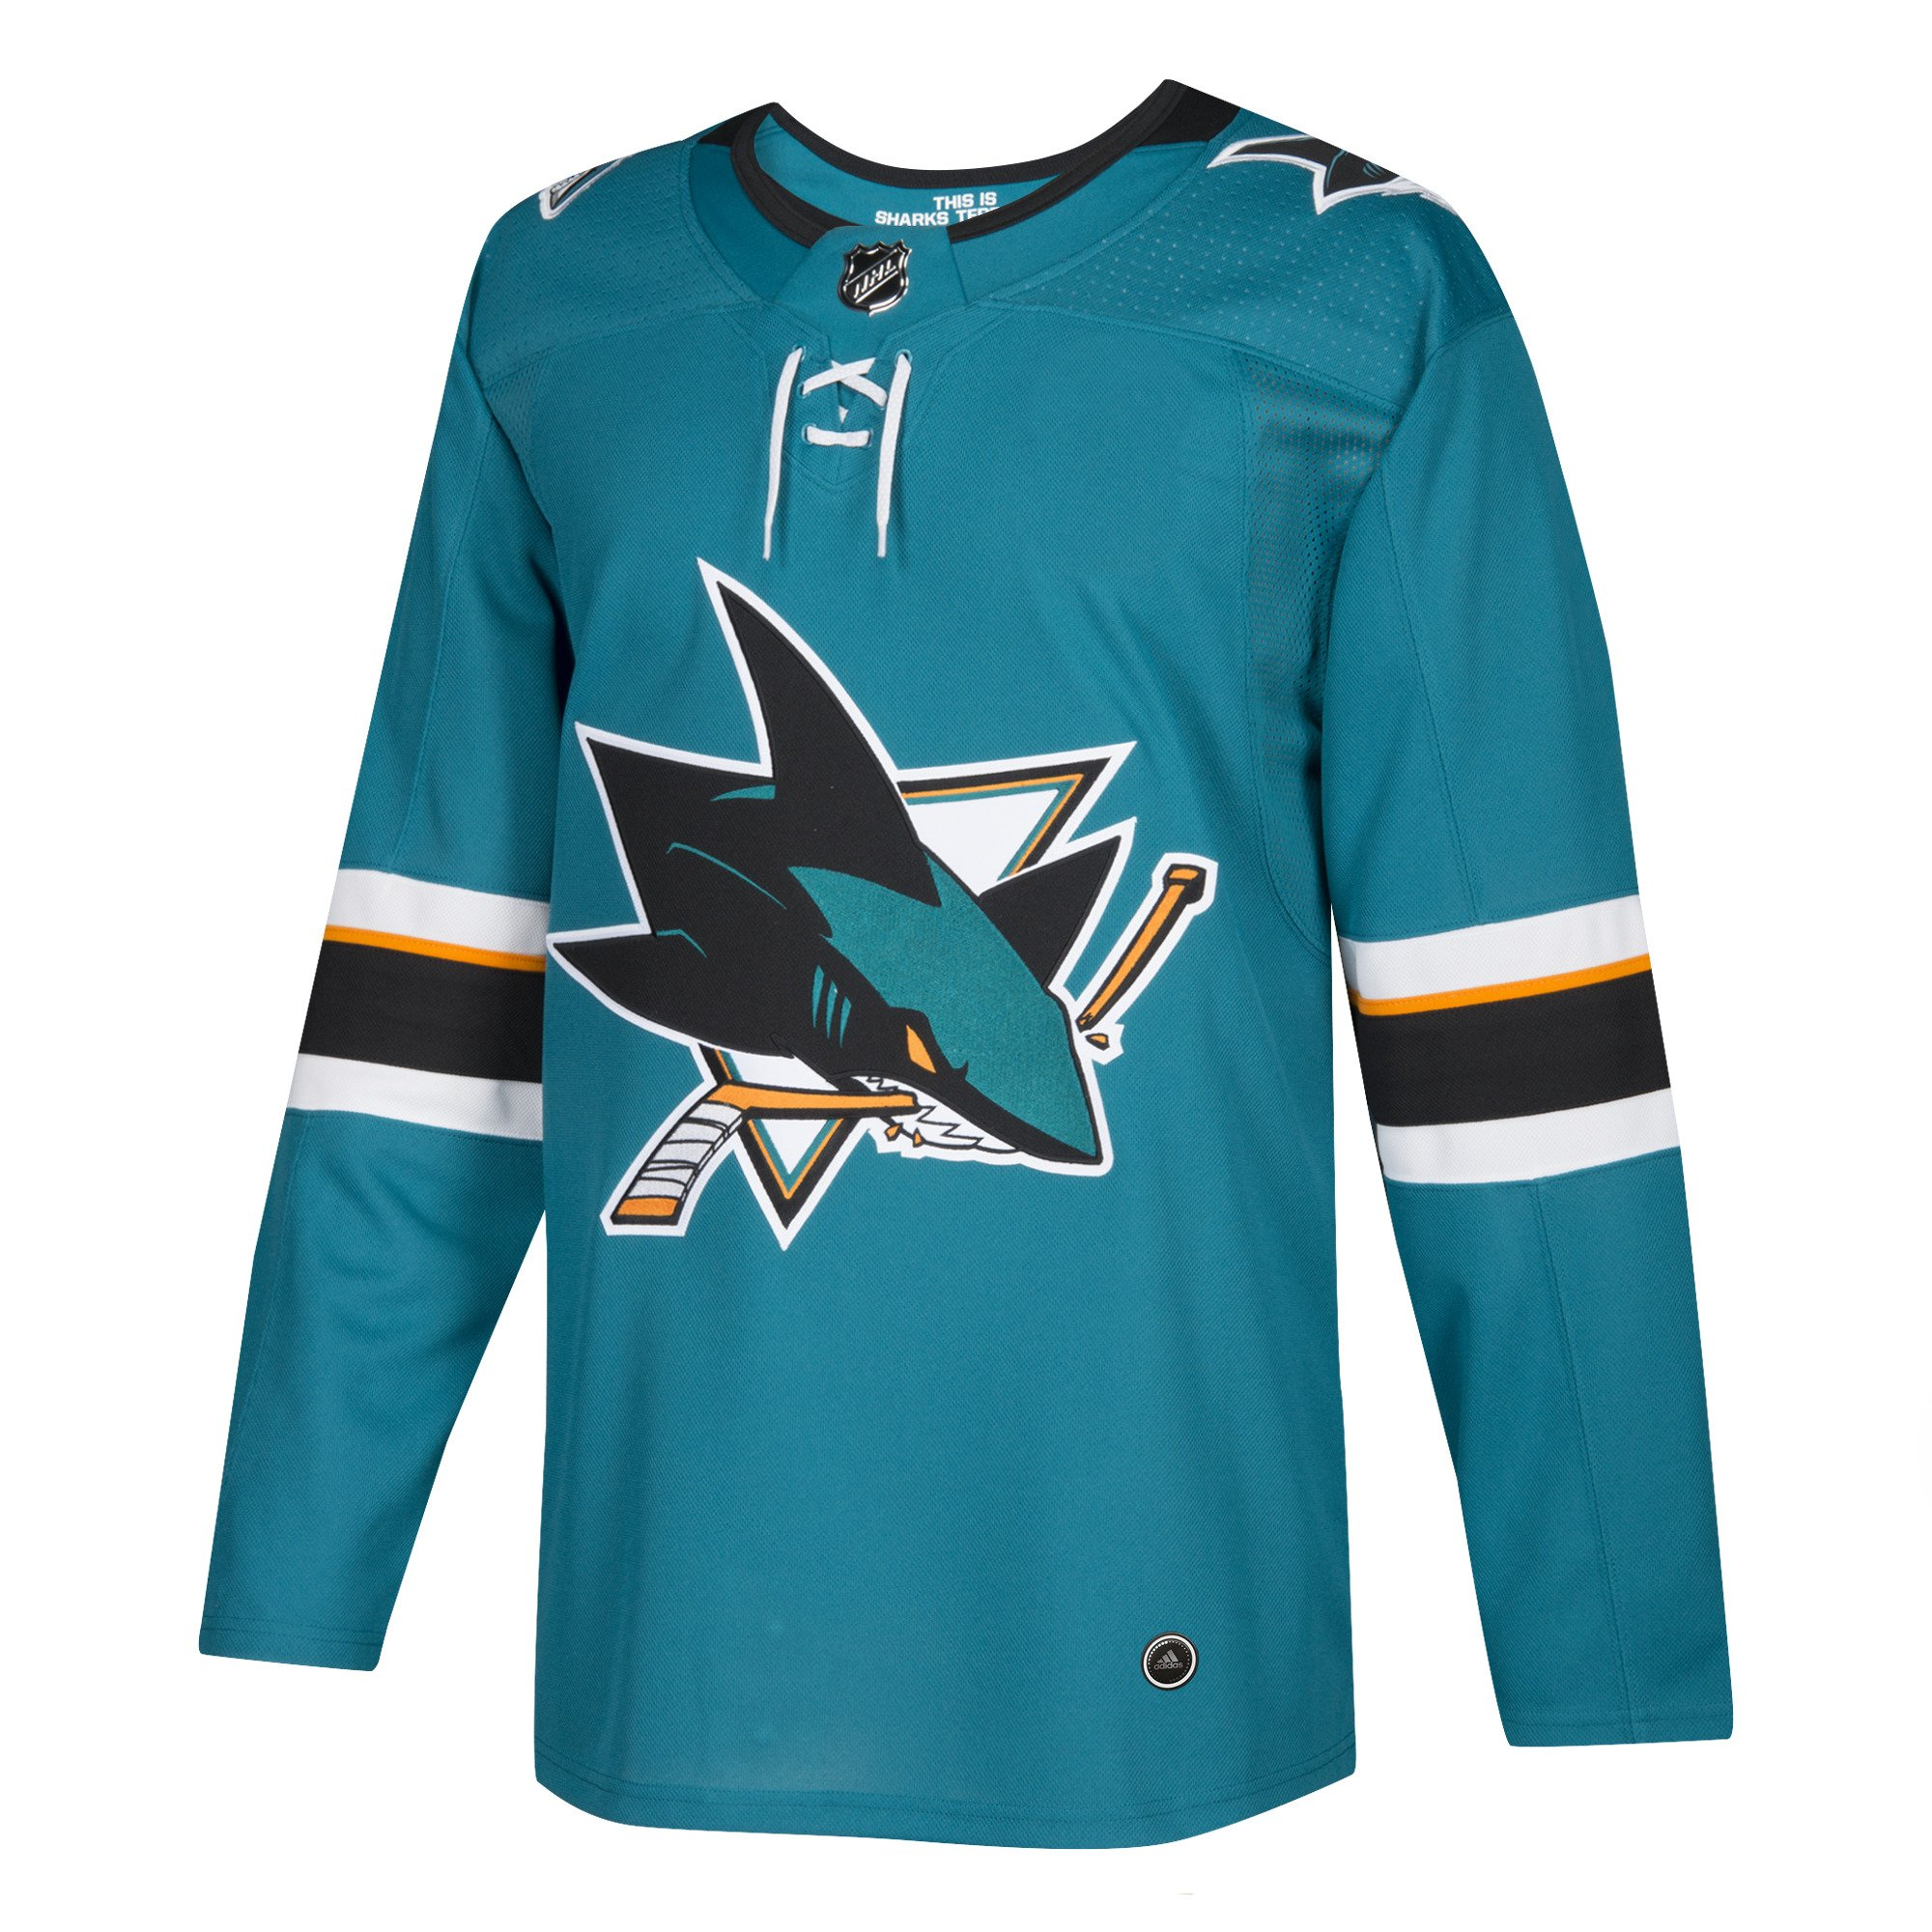 adidas Sharks Home Authentic Pro Jersey - Men's Hockey 44 Blue/Black